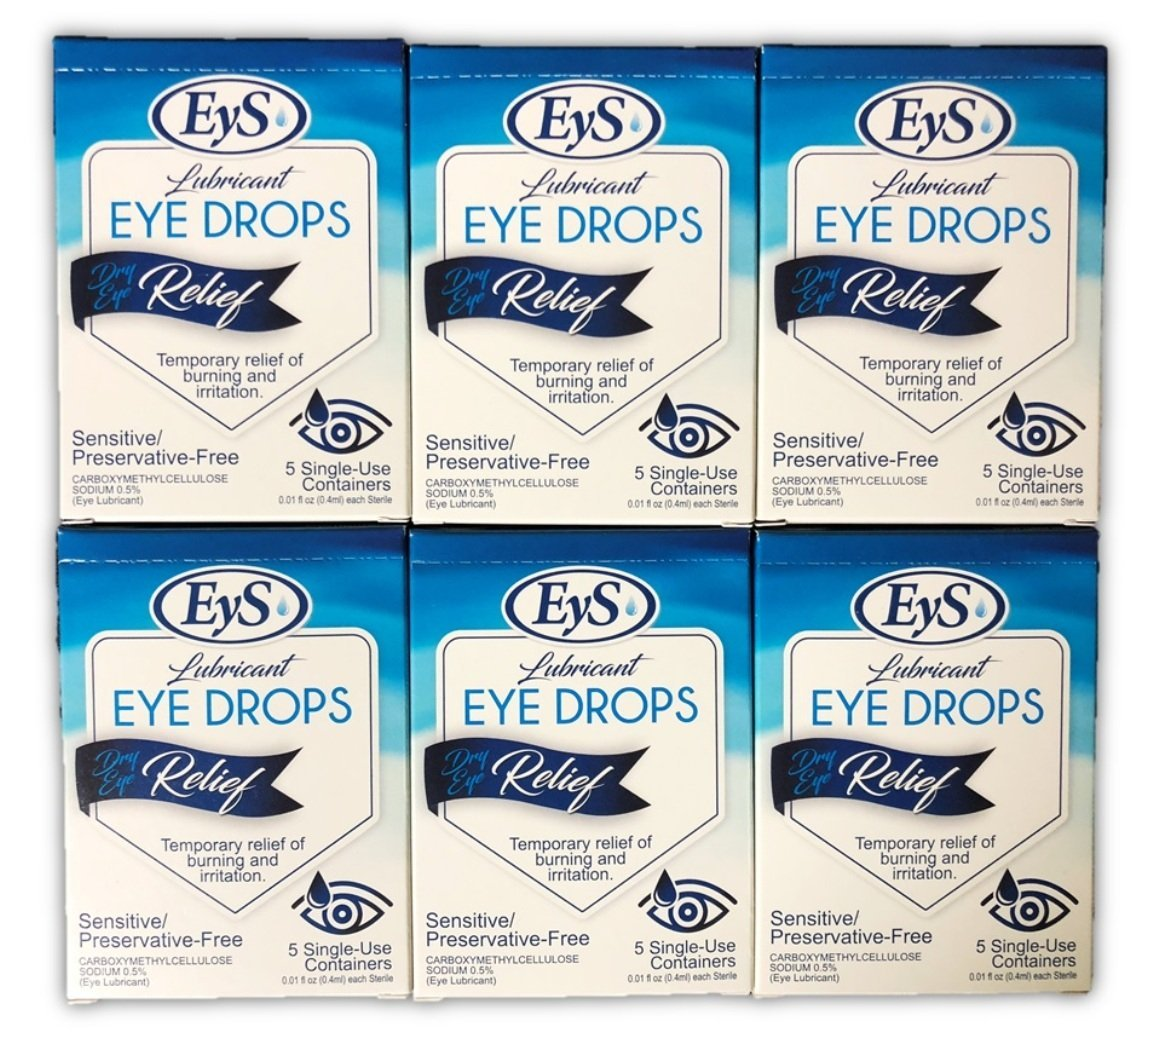 EyS Lubricant Eye Drops Dry Eye Relief - 5 Single-Use Containers/Box (6)